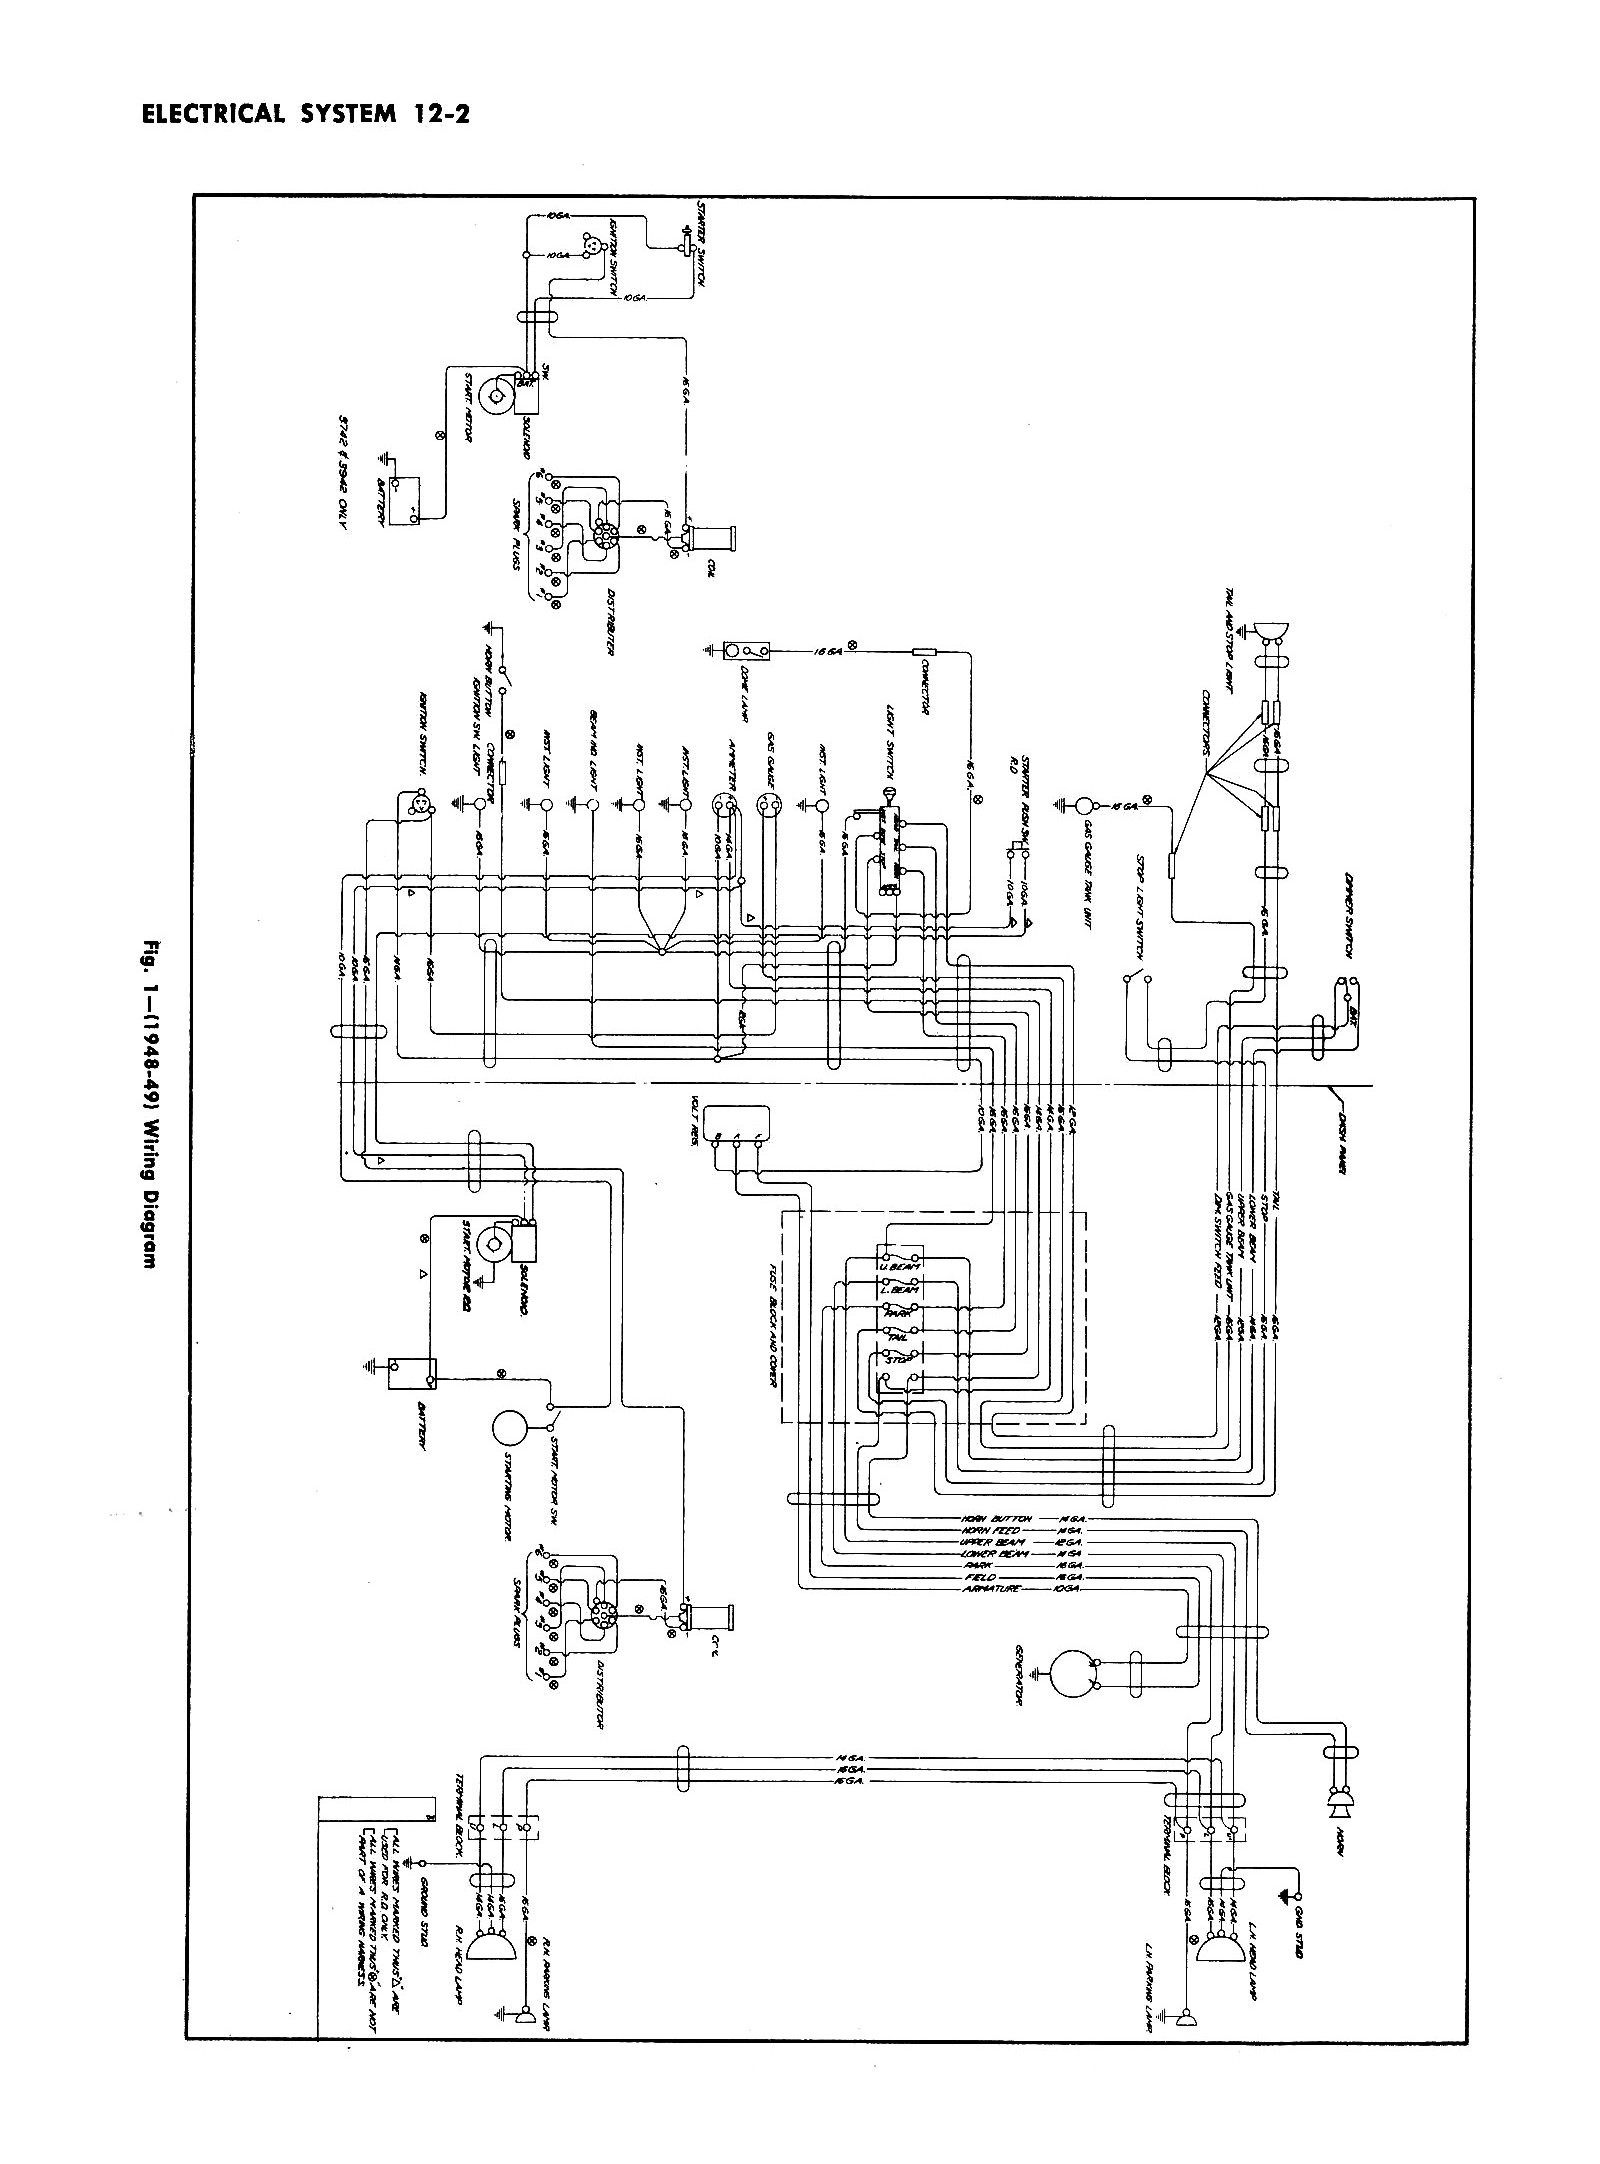 1940 Ford Heater Wiring Diagram Schematics Diagrams 1950 Kaiser 1959 International Trucks House Rh Maxturner Co M35a Truck 1935